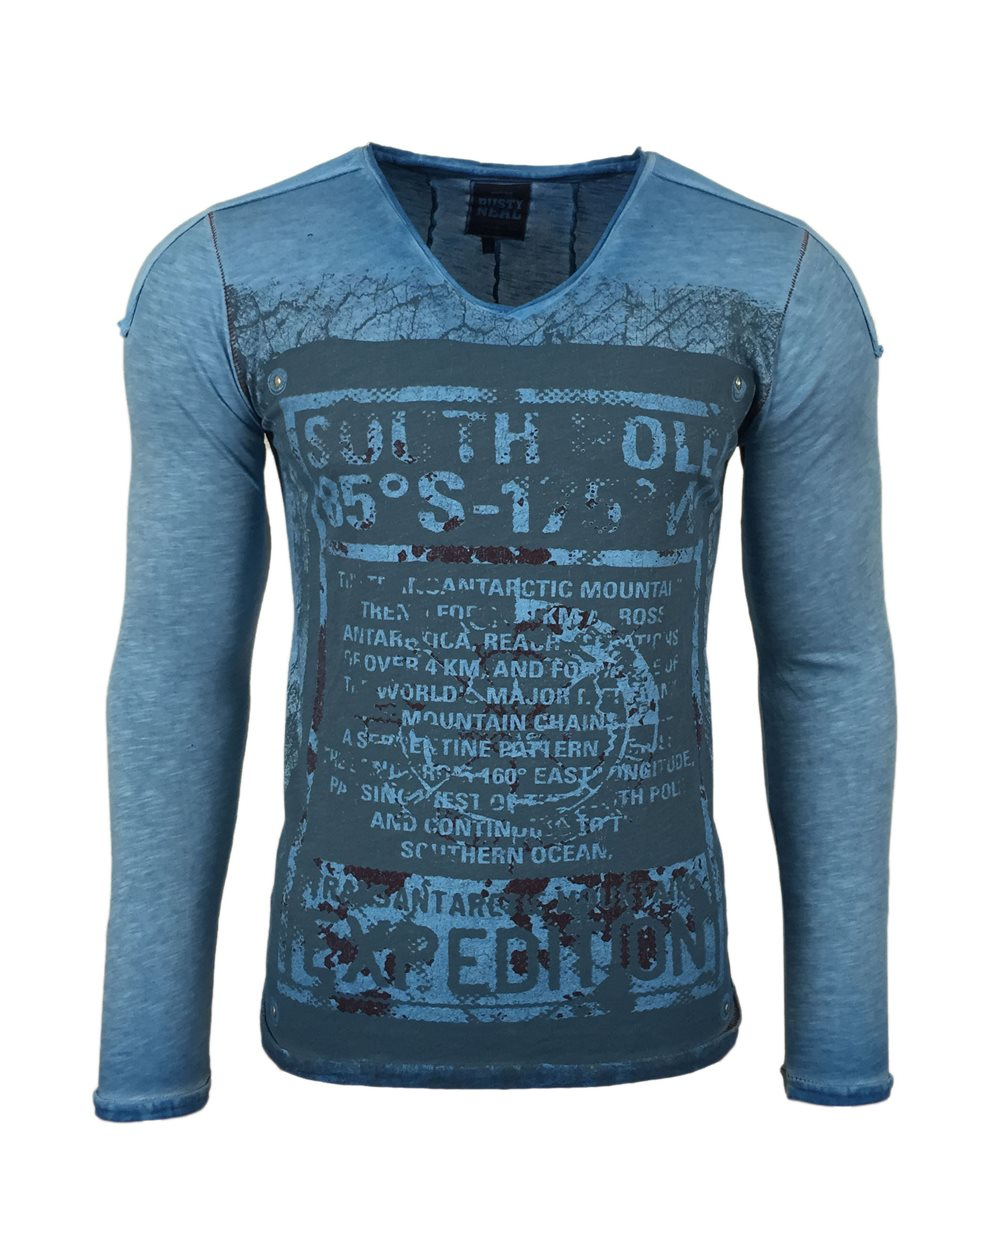 Subliminal Mode - Tee shirt delaver homme manches longues col V SB10107